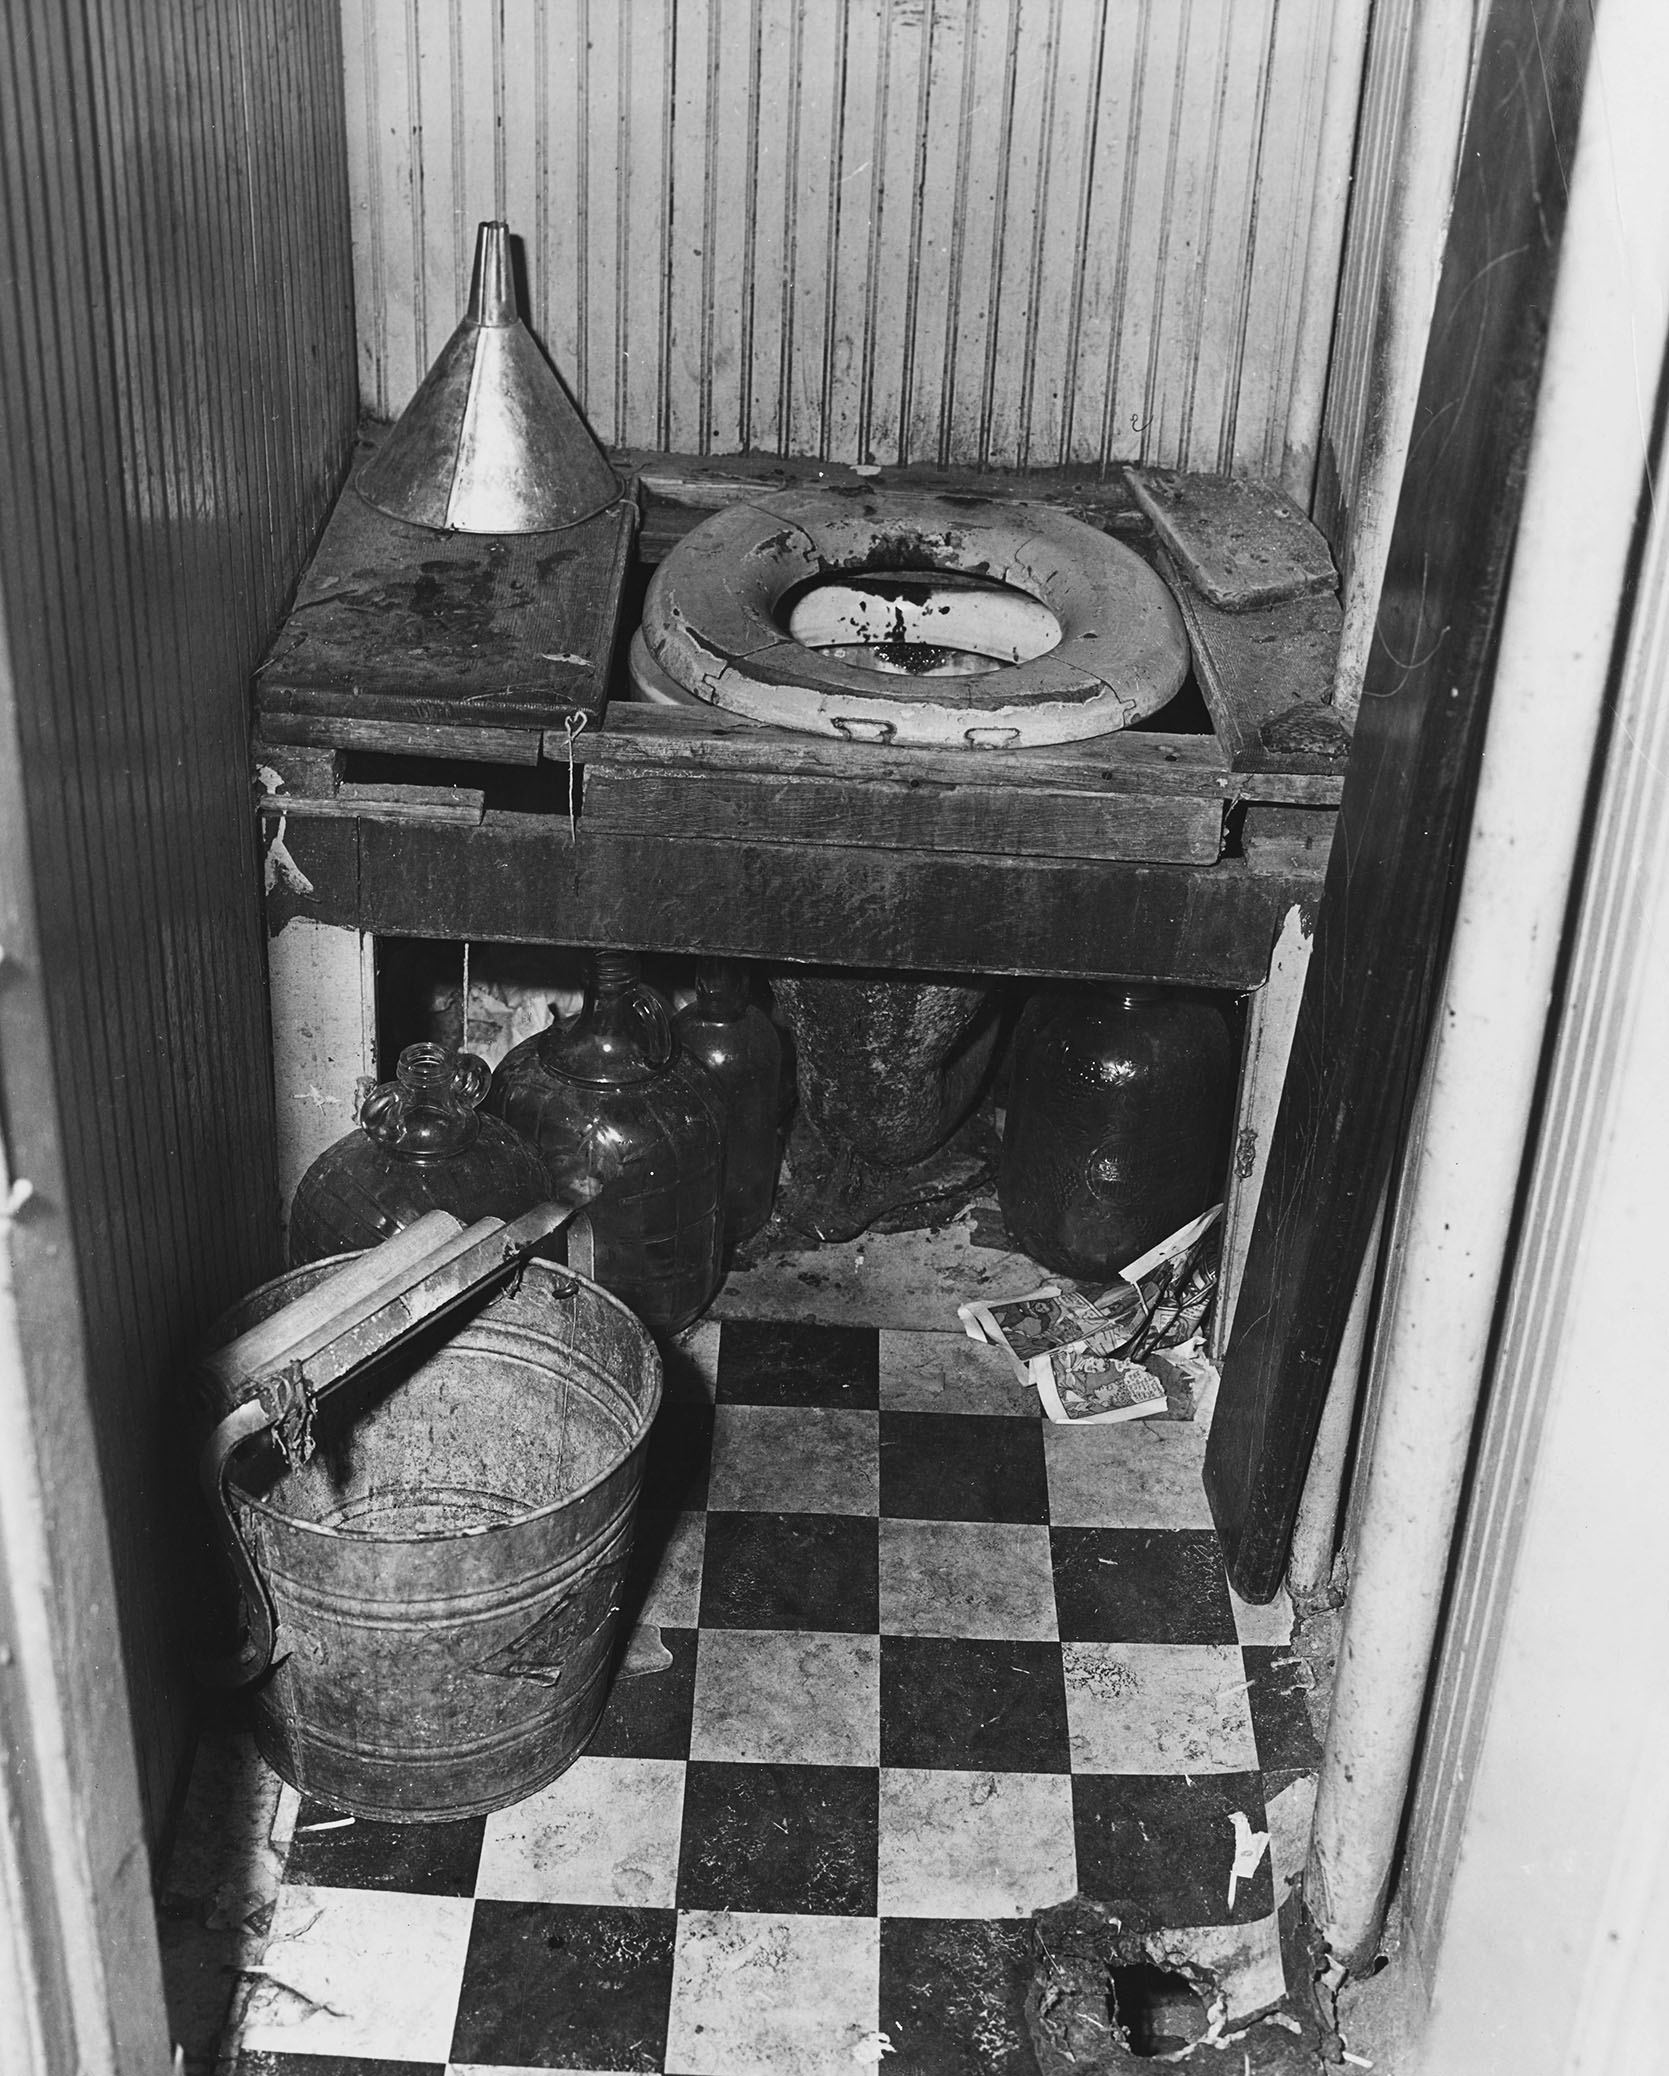 Shared toilet in tenement building, n.d. Credit Cosmo-Sileo. NYC Municipal Archives Collection.